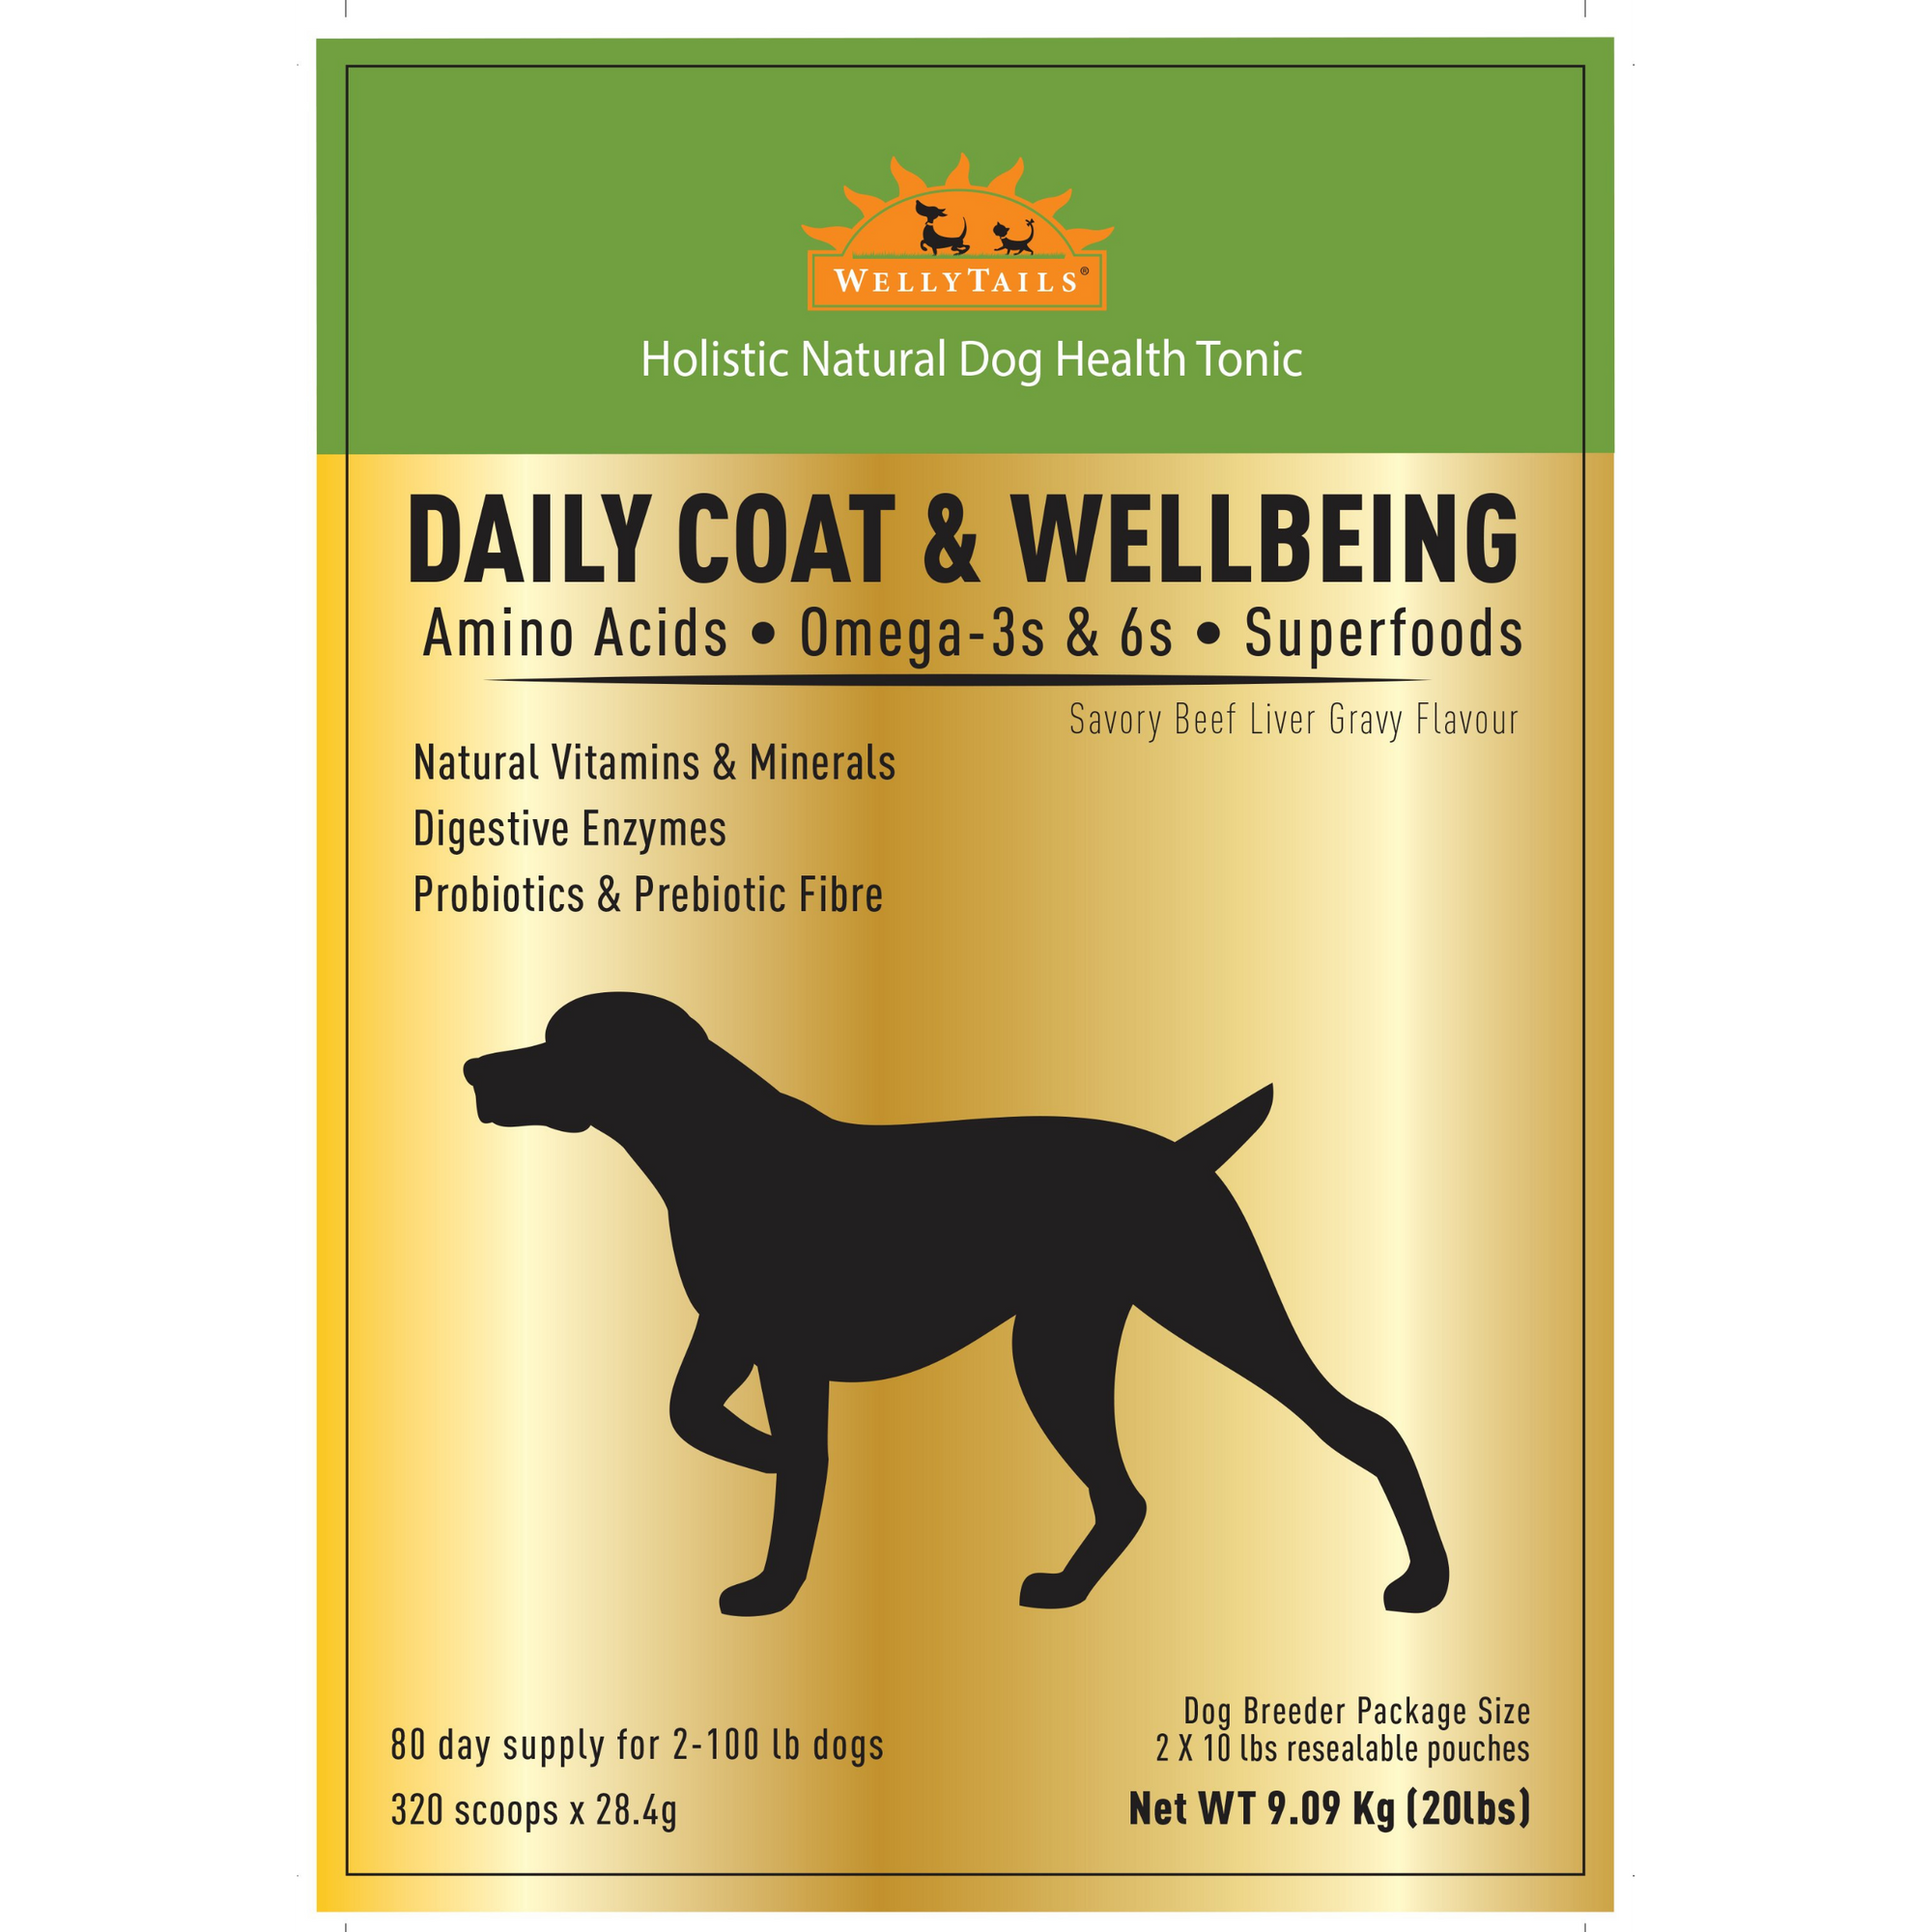 WELLYTAILS® DAILY COAT & WELLBEING 9.08Kg (20 Lbs) MADE IN CANADA